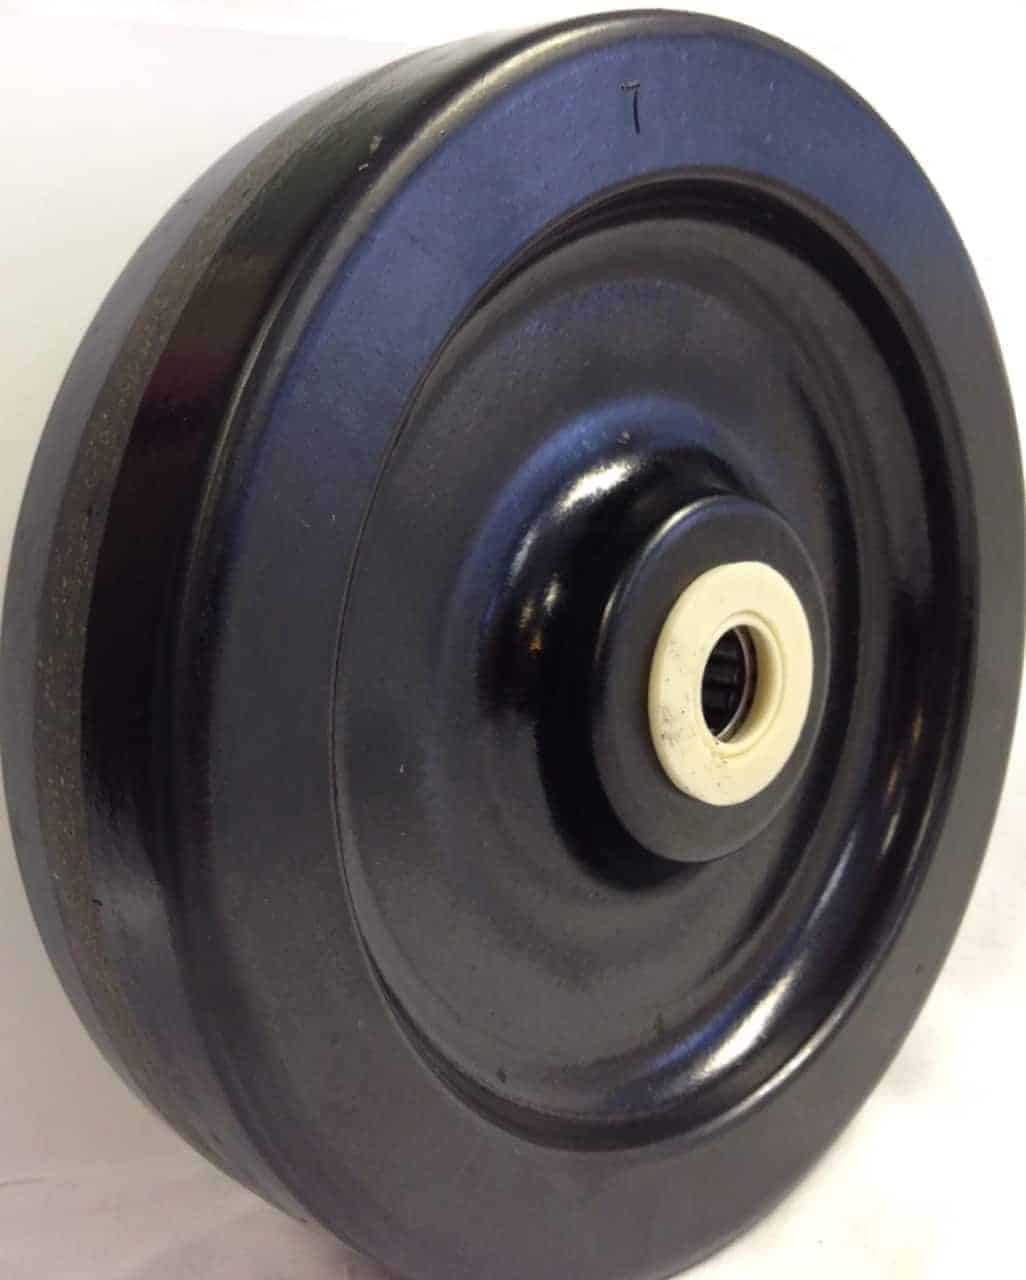 10″ Phenolic Wheel With 2-3/4″ Hub 1-1/4″ Roller Bearing 2500 Lbs Capacity